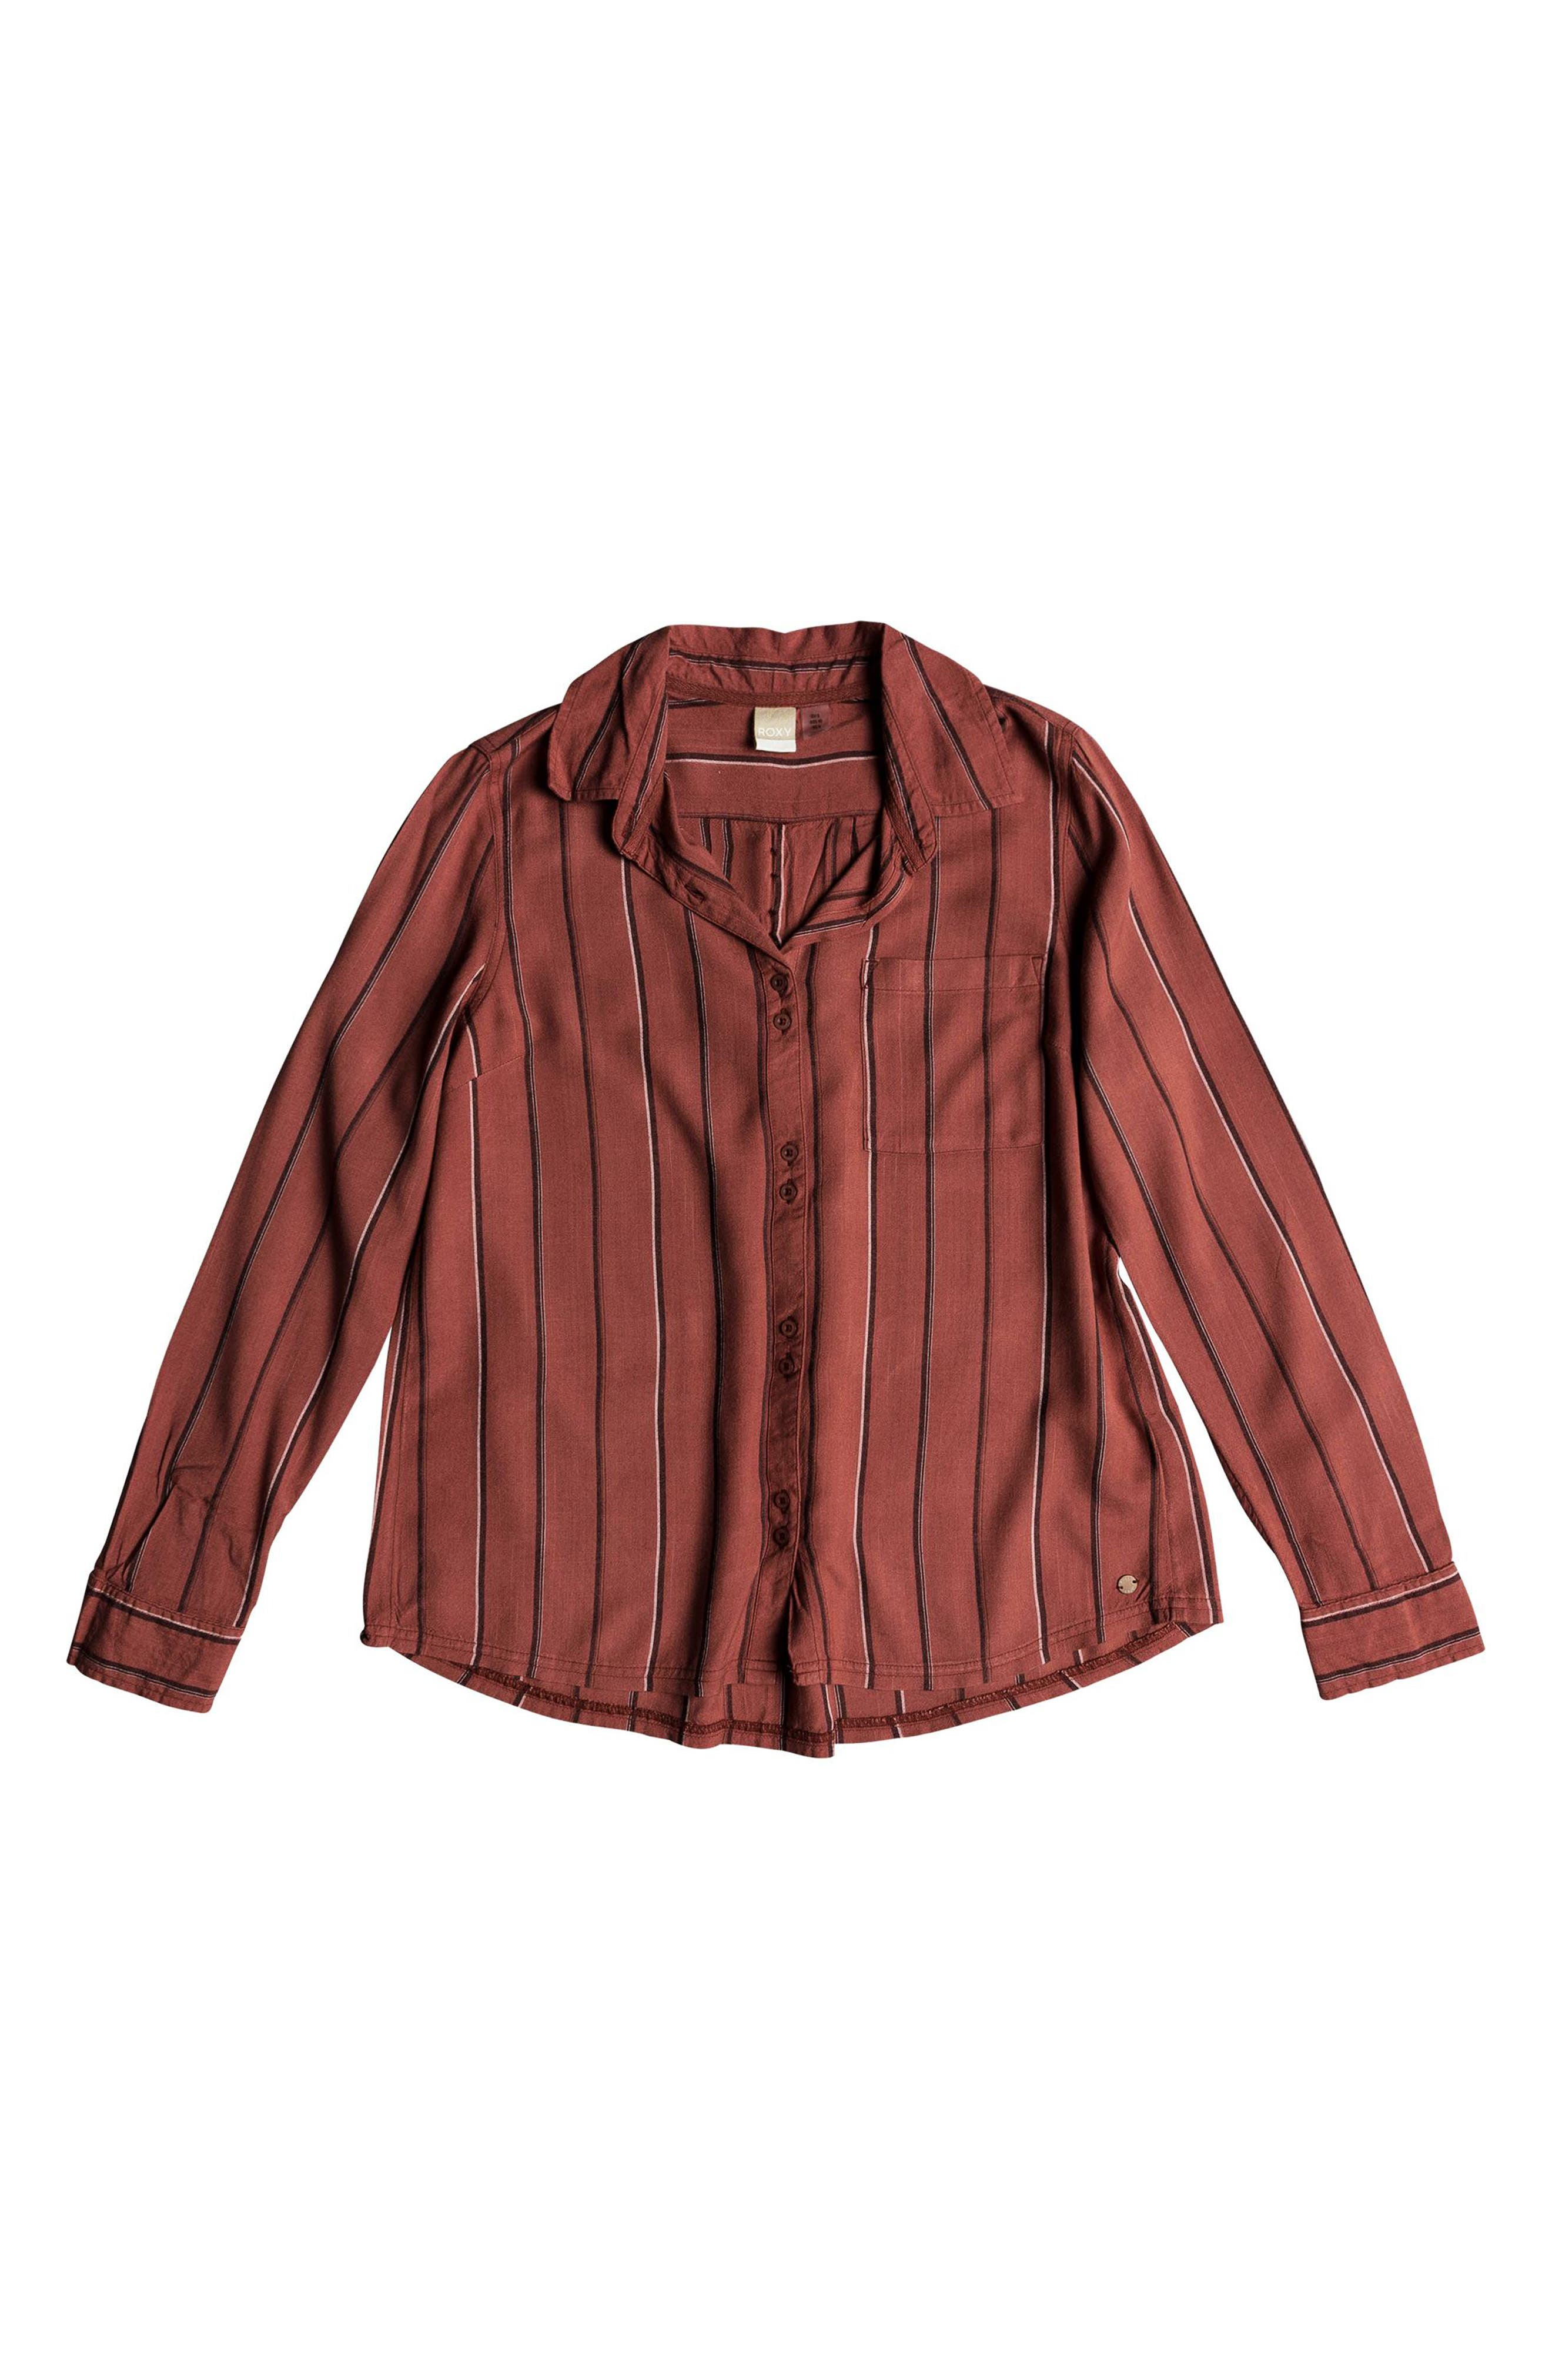 Concrete Streets Stripe Shirt,                             Alternate thumbnail 4, color,                             WITHERED ROSE